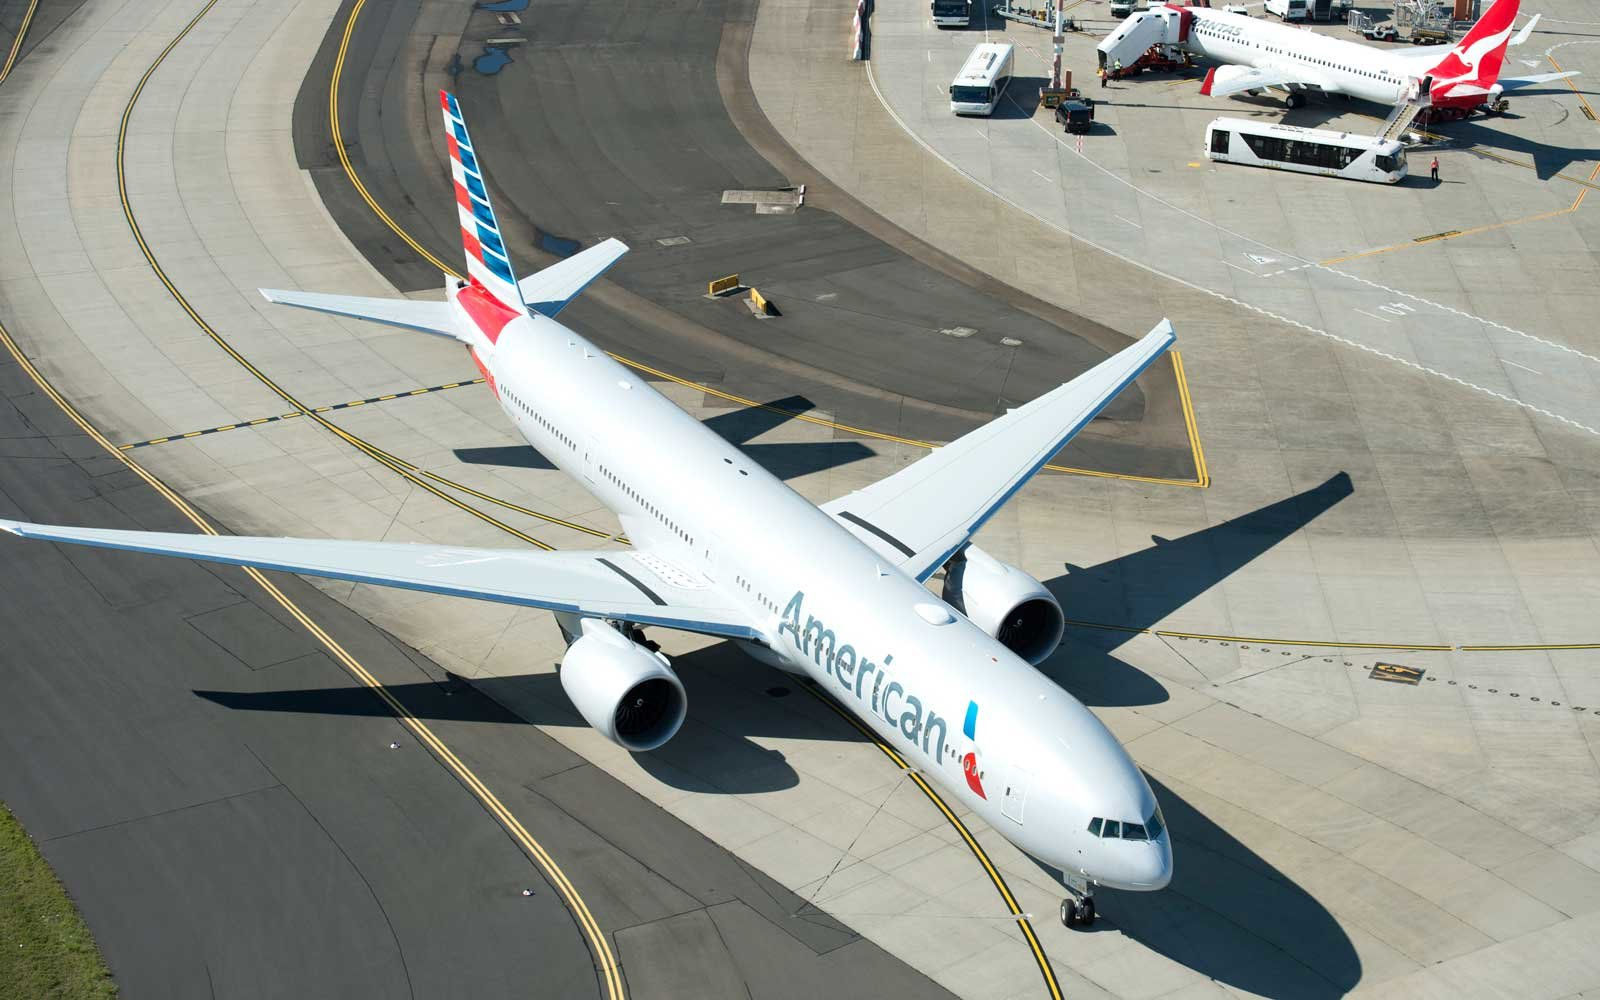 American Airlines Frequent Flyer Program